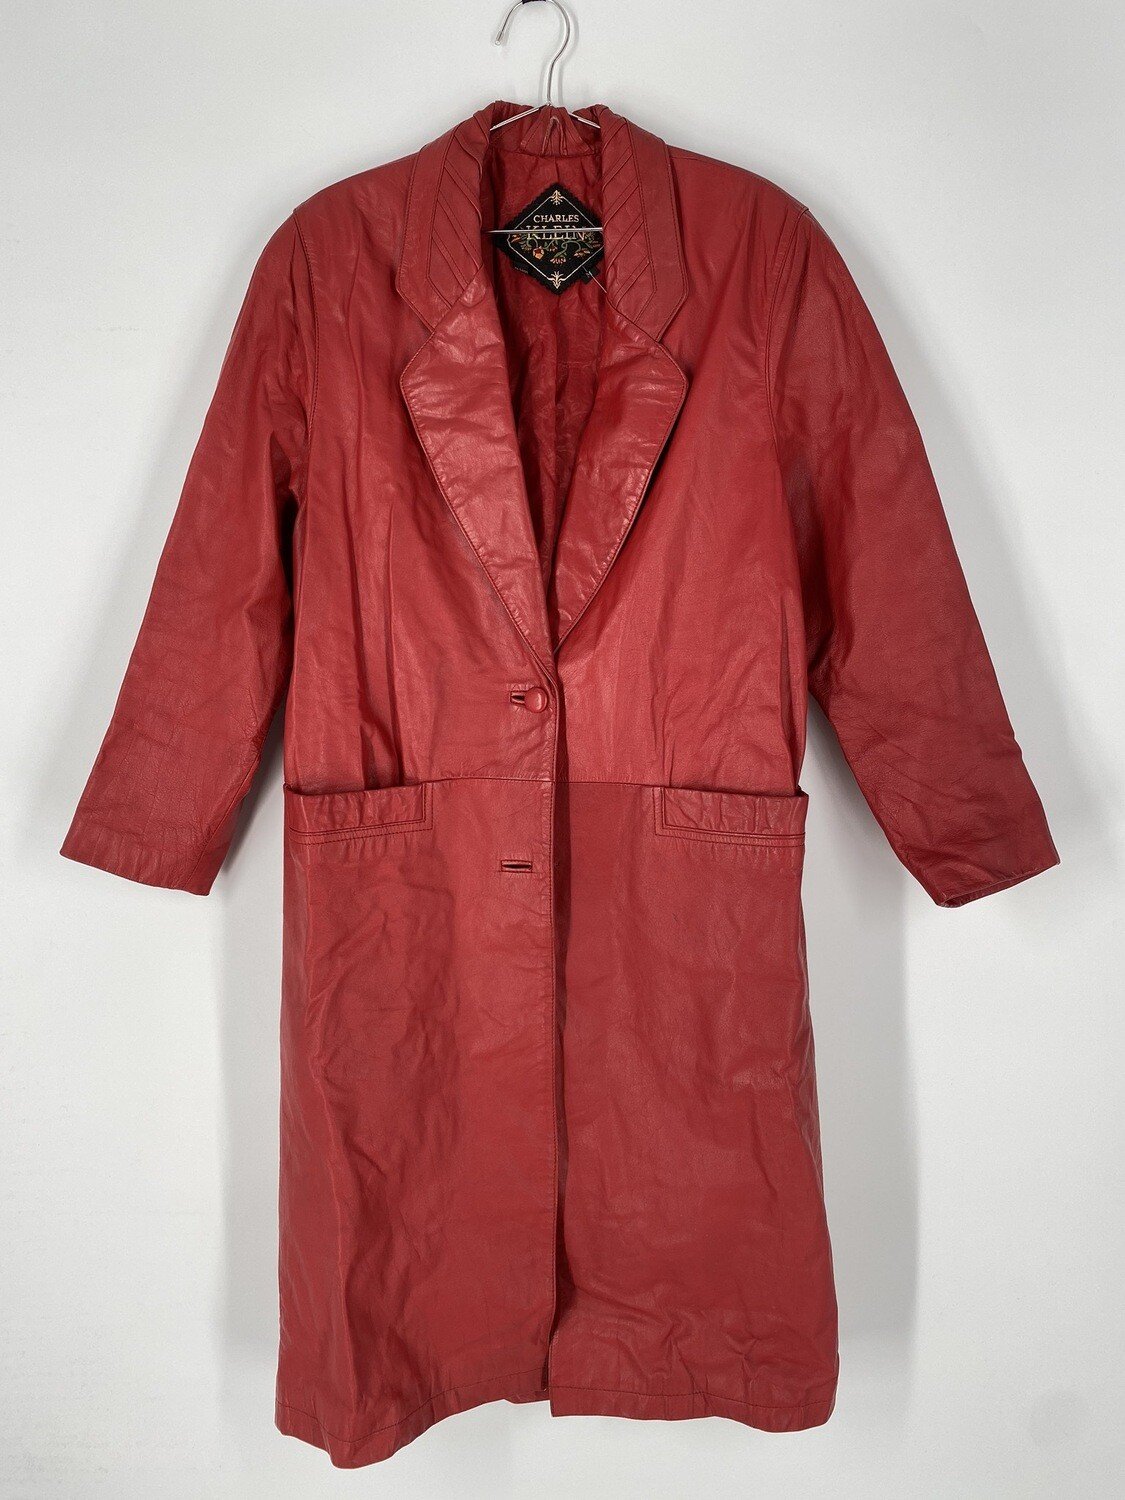 Charles Klein Red Leather Trench Coat Size M